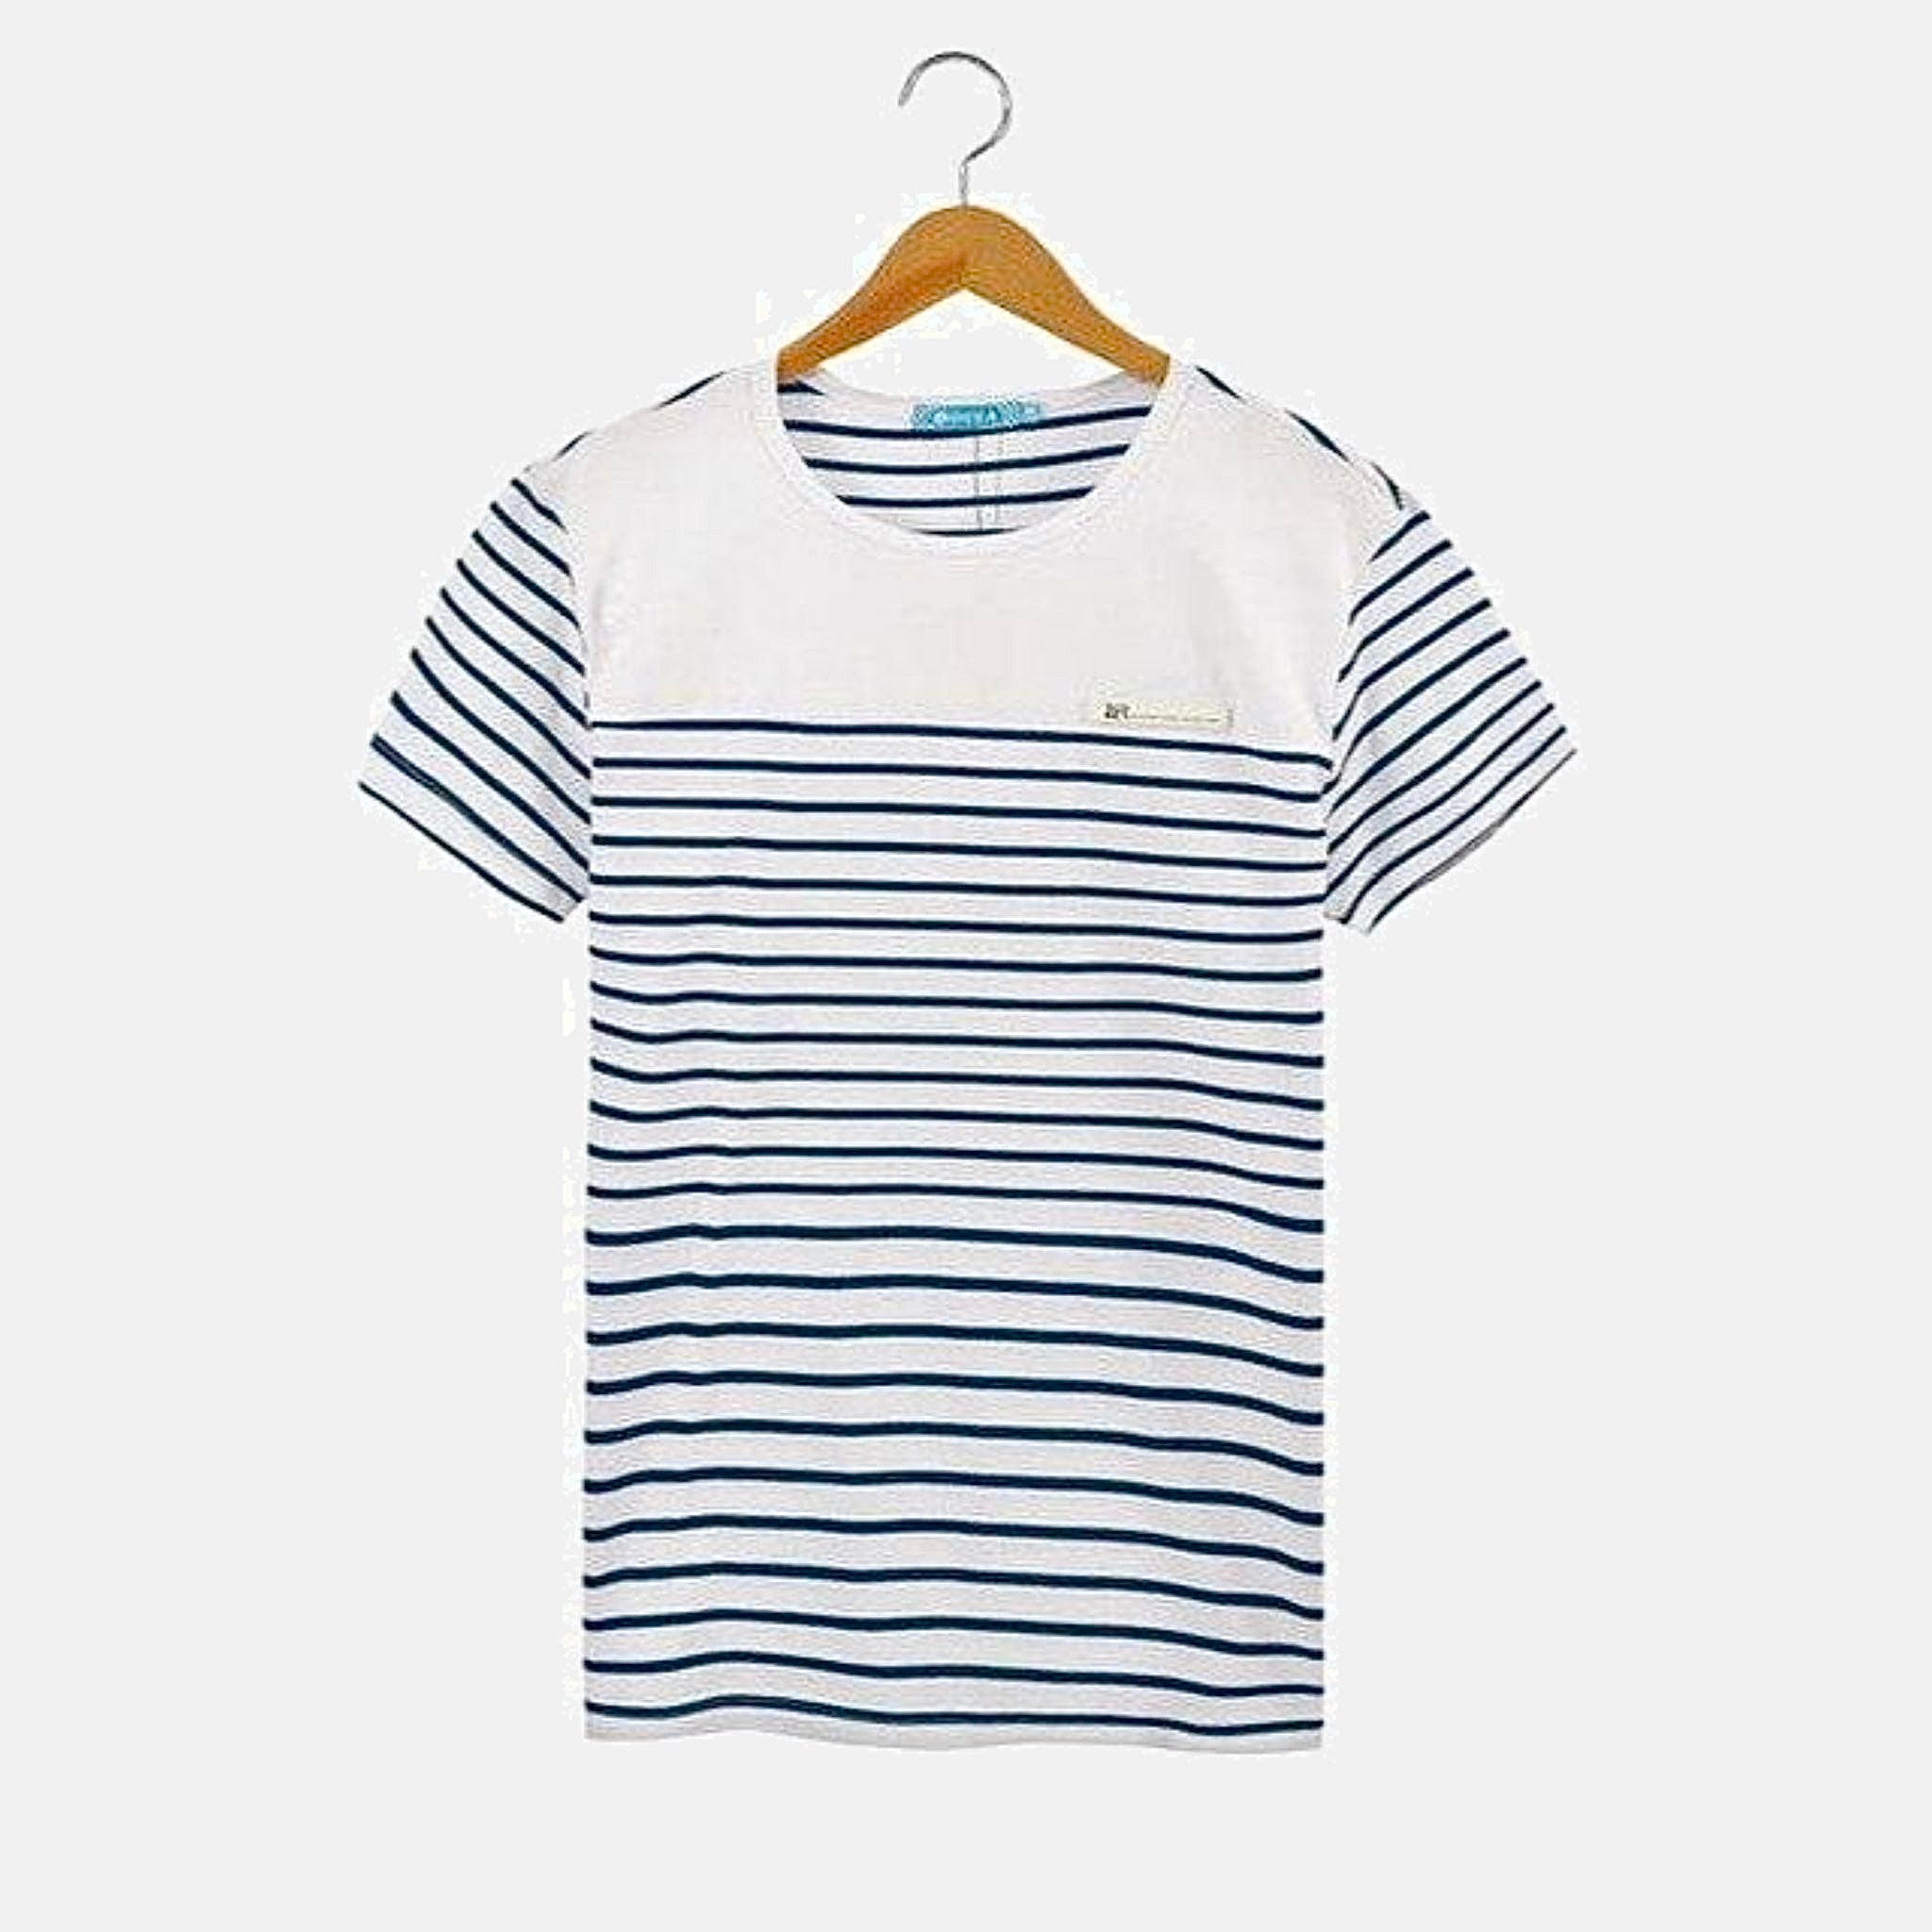 Family Match Sets   Striped cotton boatneck T-Shirt mother daughter mom girls toddler mesh midi skirt Father son dad boys toddlers navy blue shorts Matching clothing outfits Trending